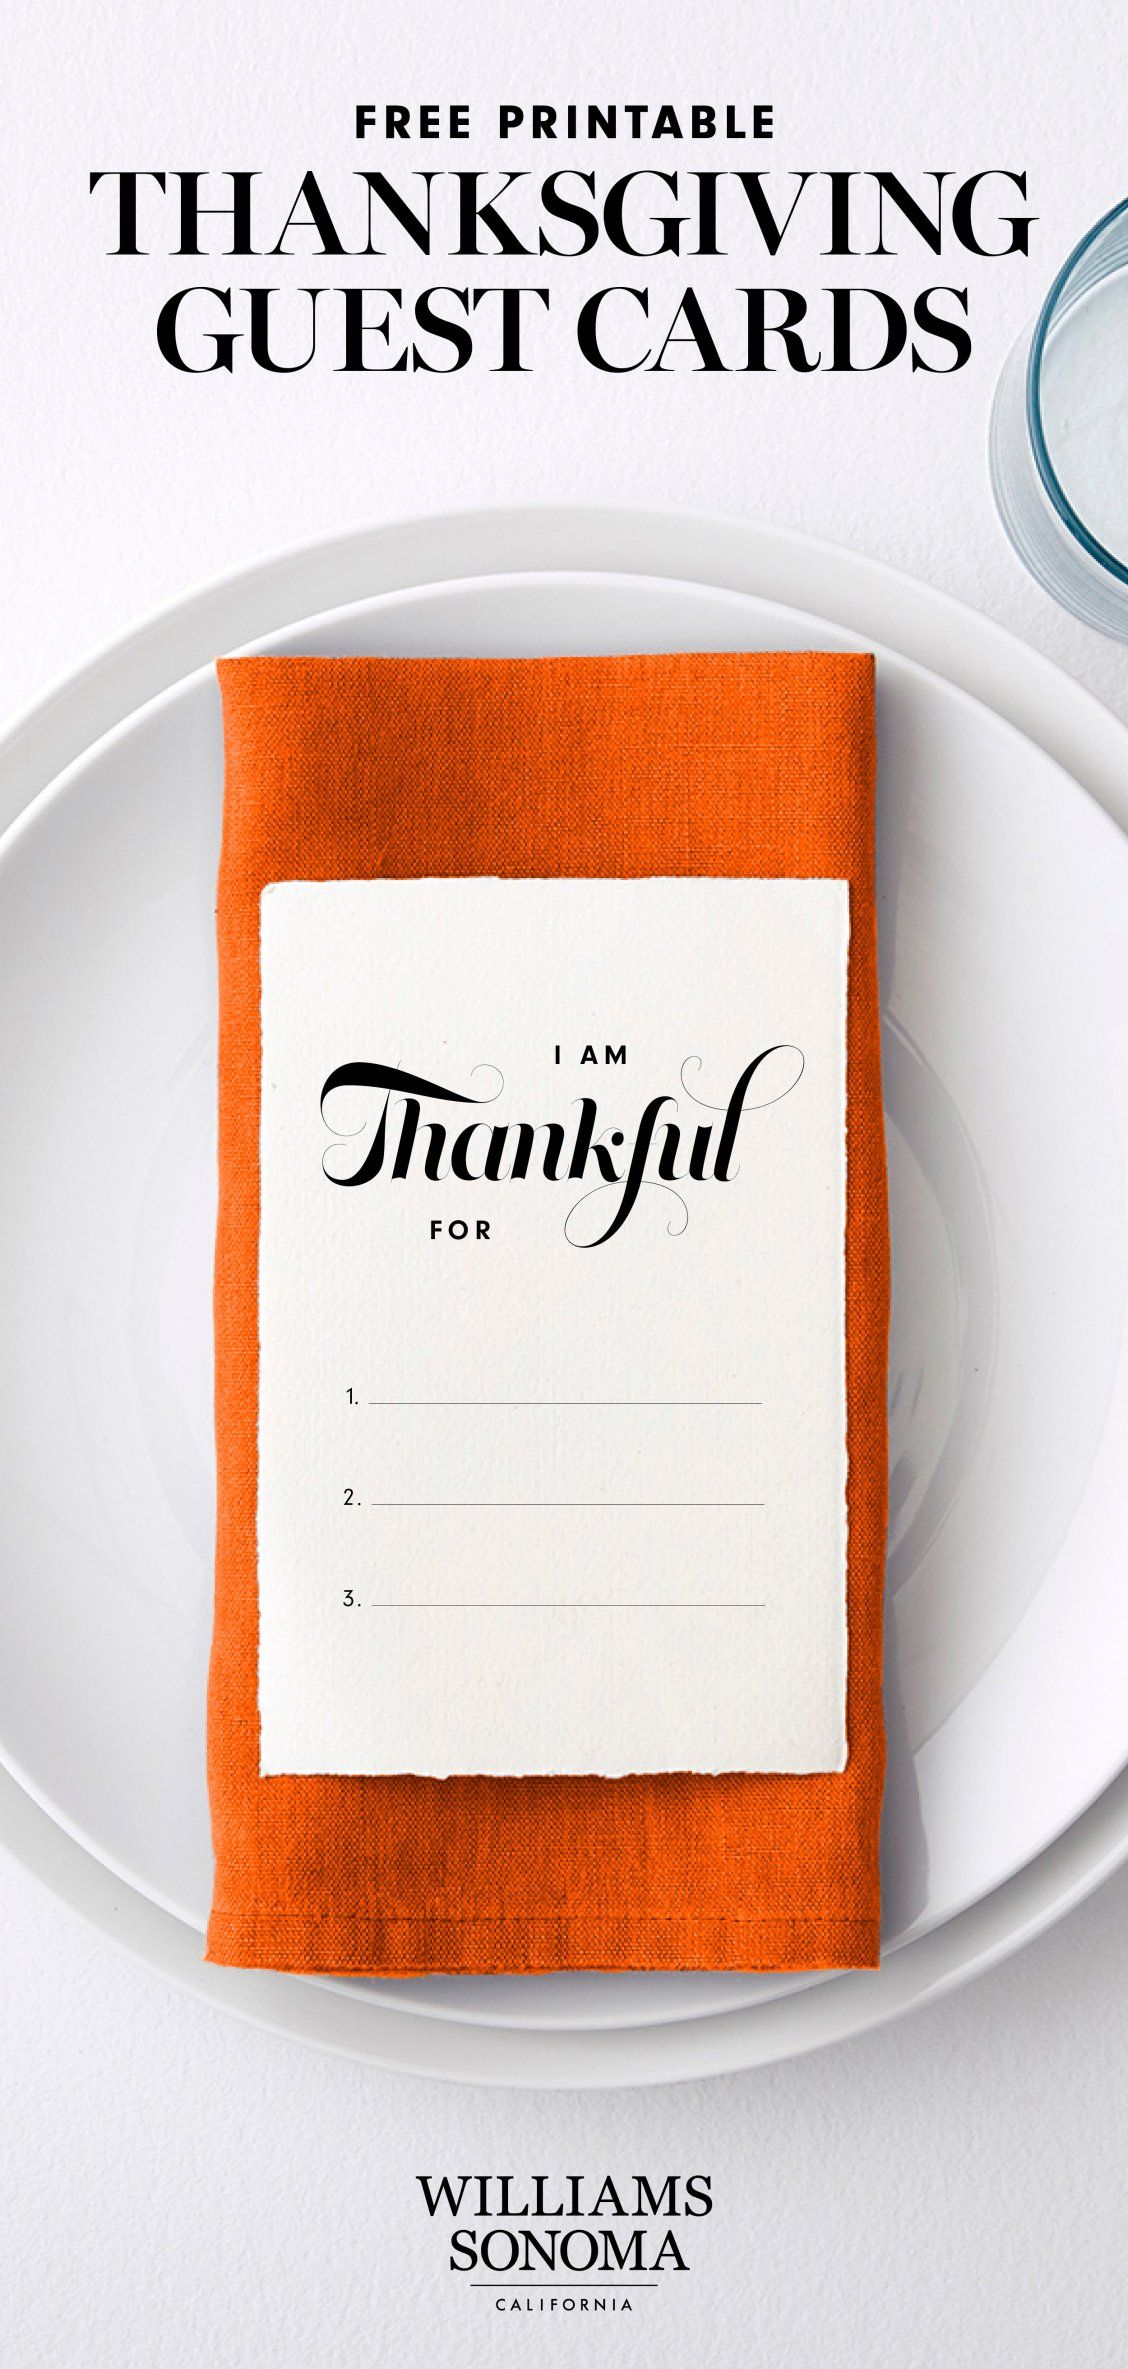 Free printable thanksgiving guest cards williams sonoma